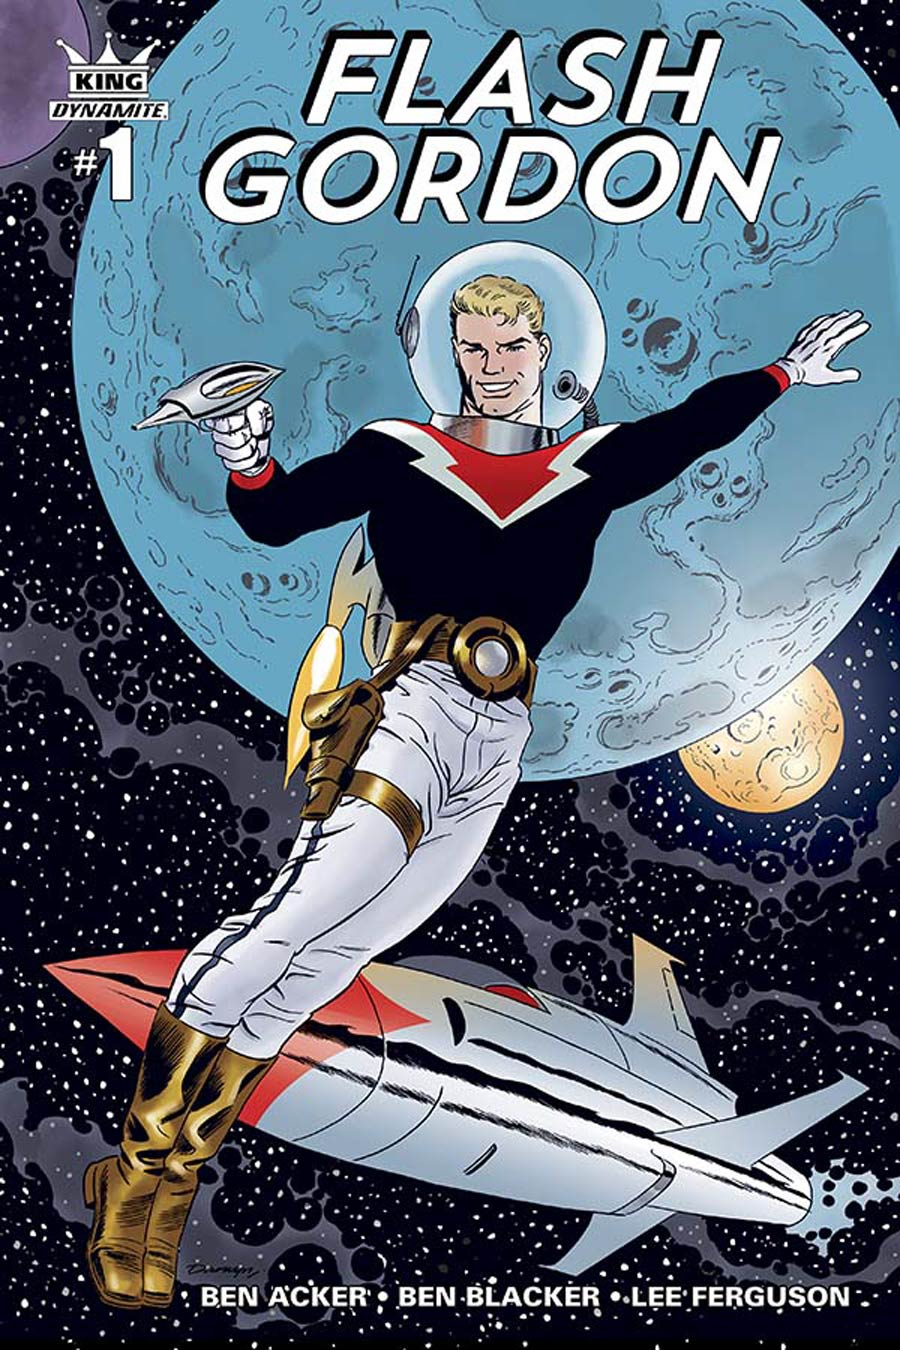 King Flash Gordon #1 Cover A Regular Darwyn Cooke Color Connecting Cover (1 Of 5)